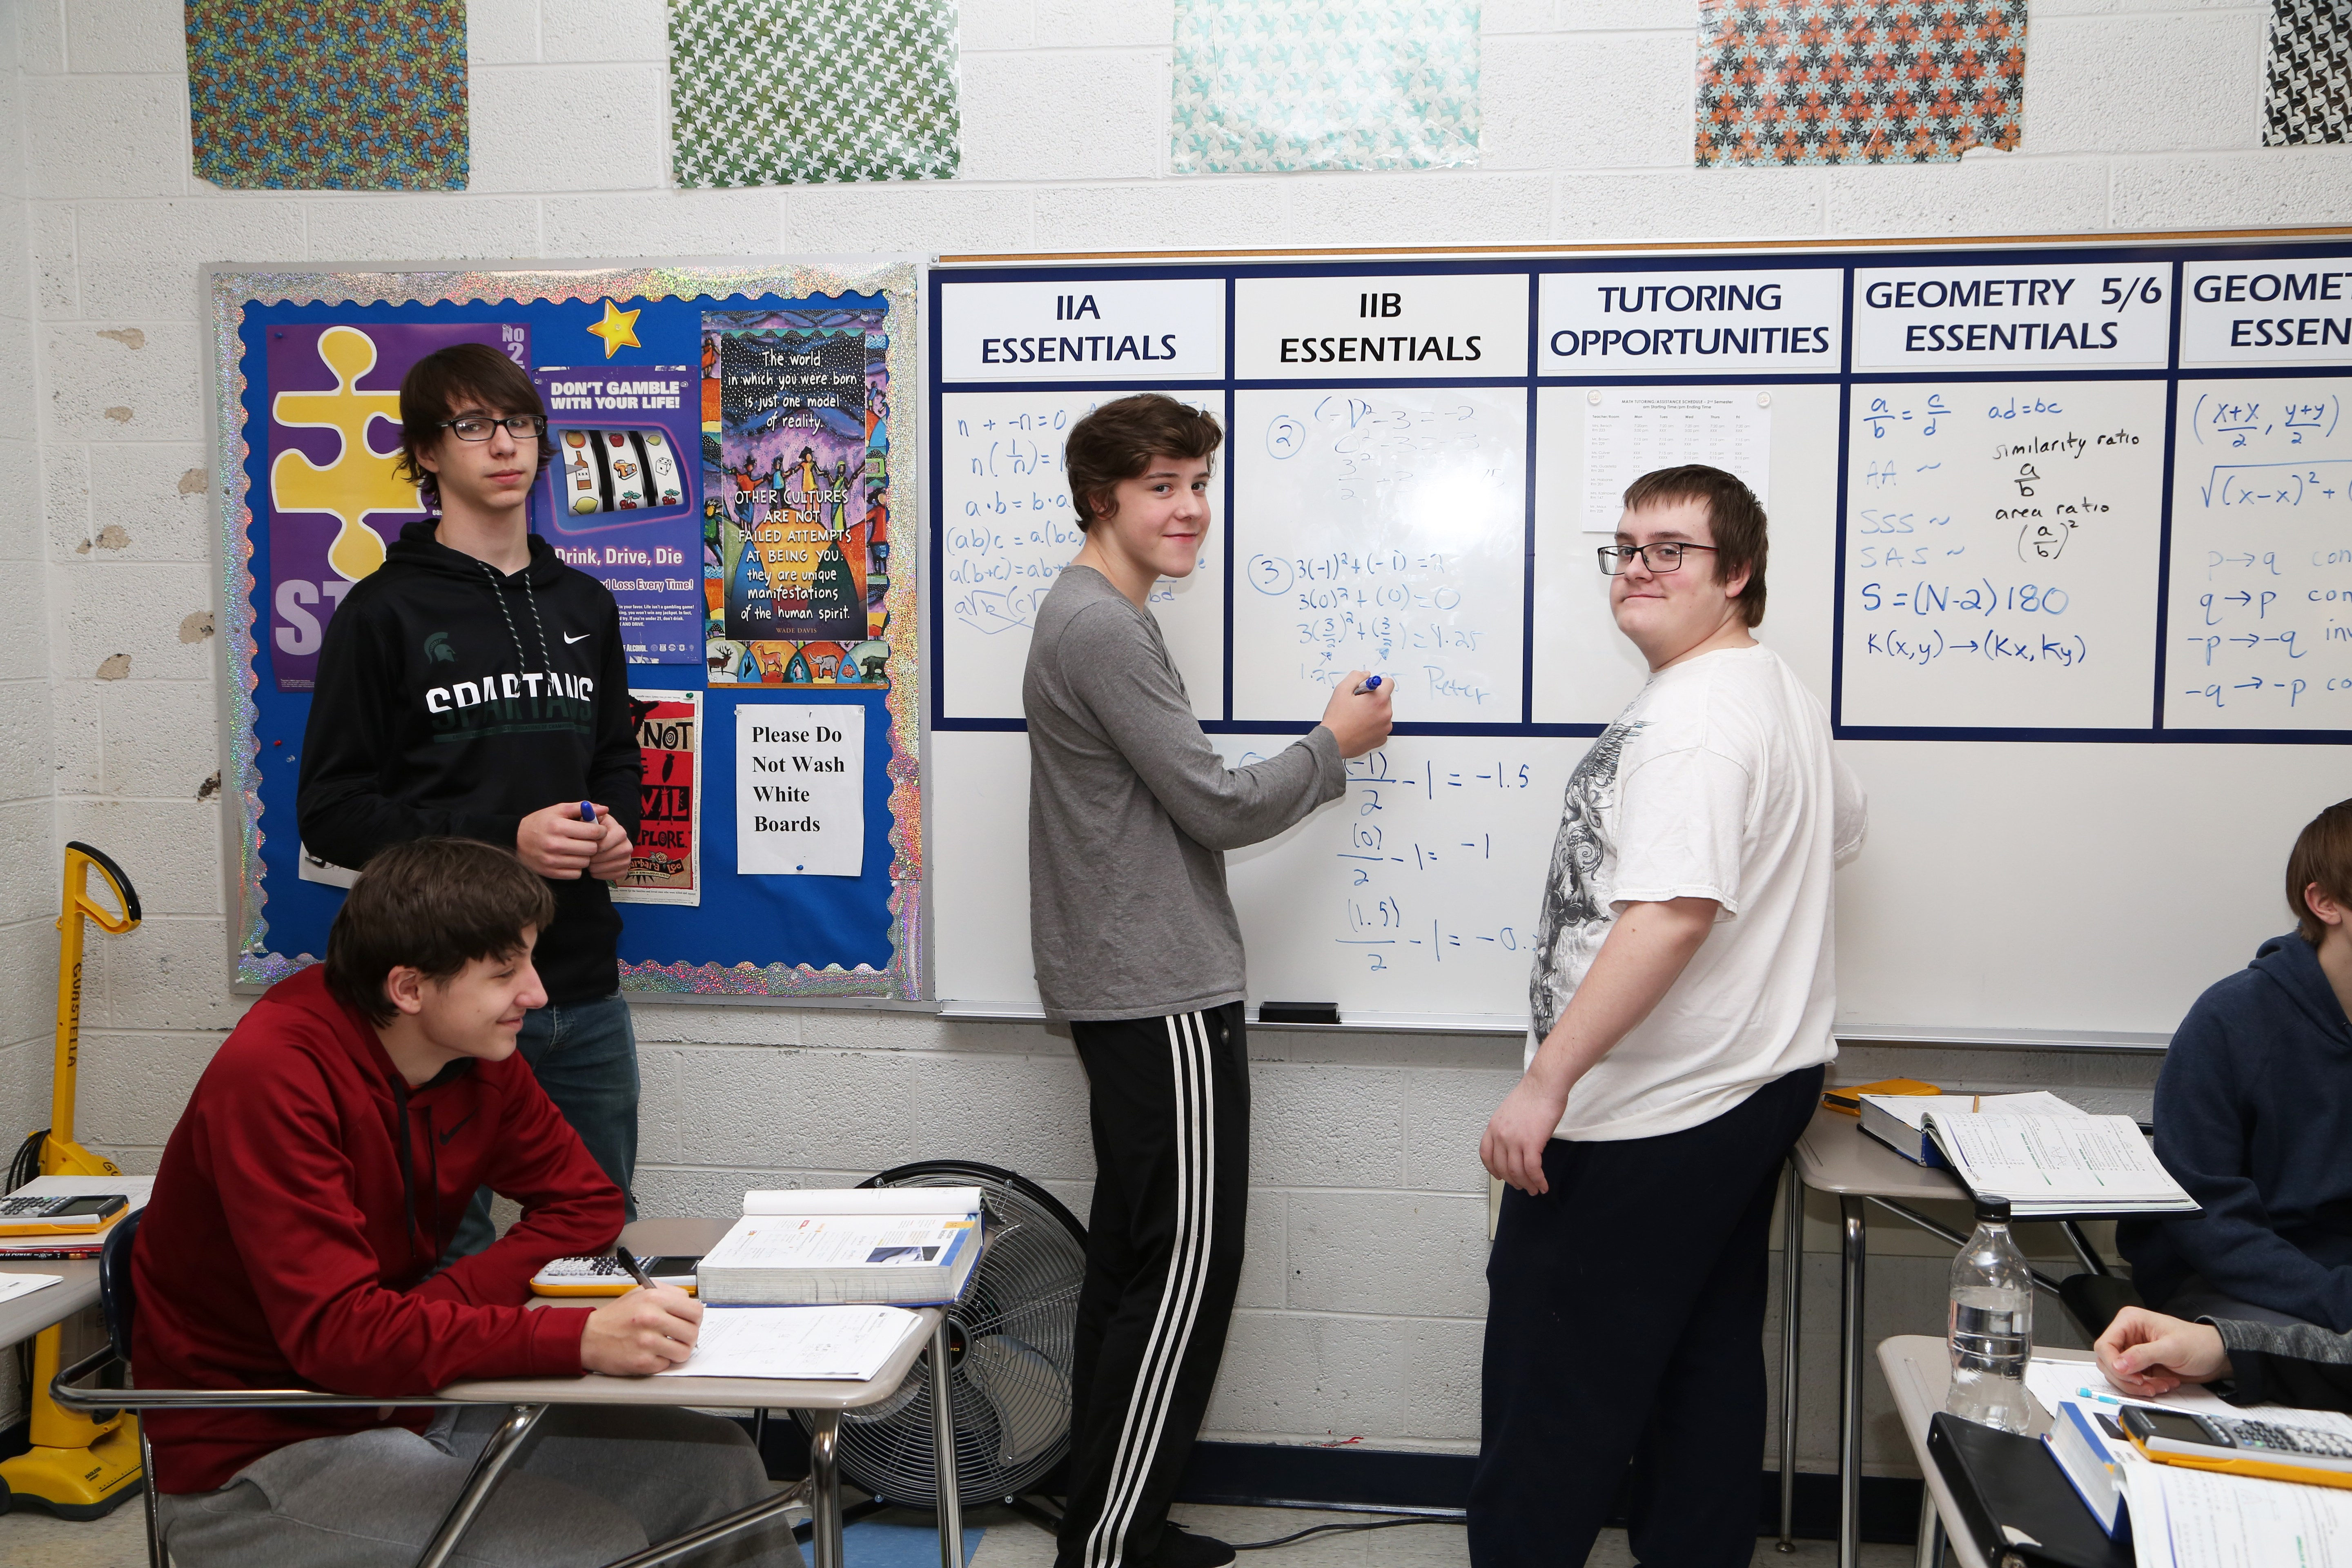 Math Class students solving math problems on the board